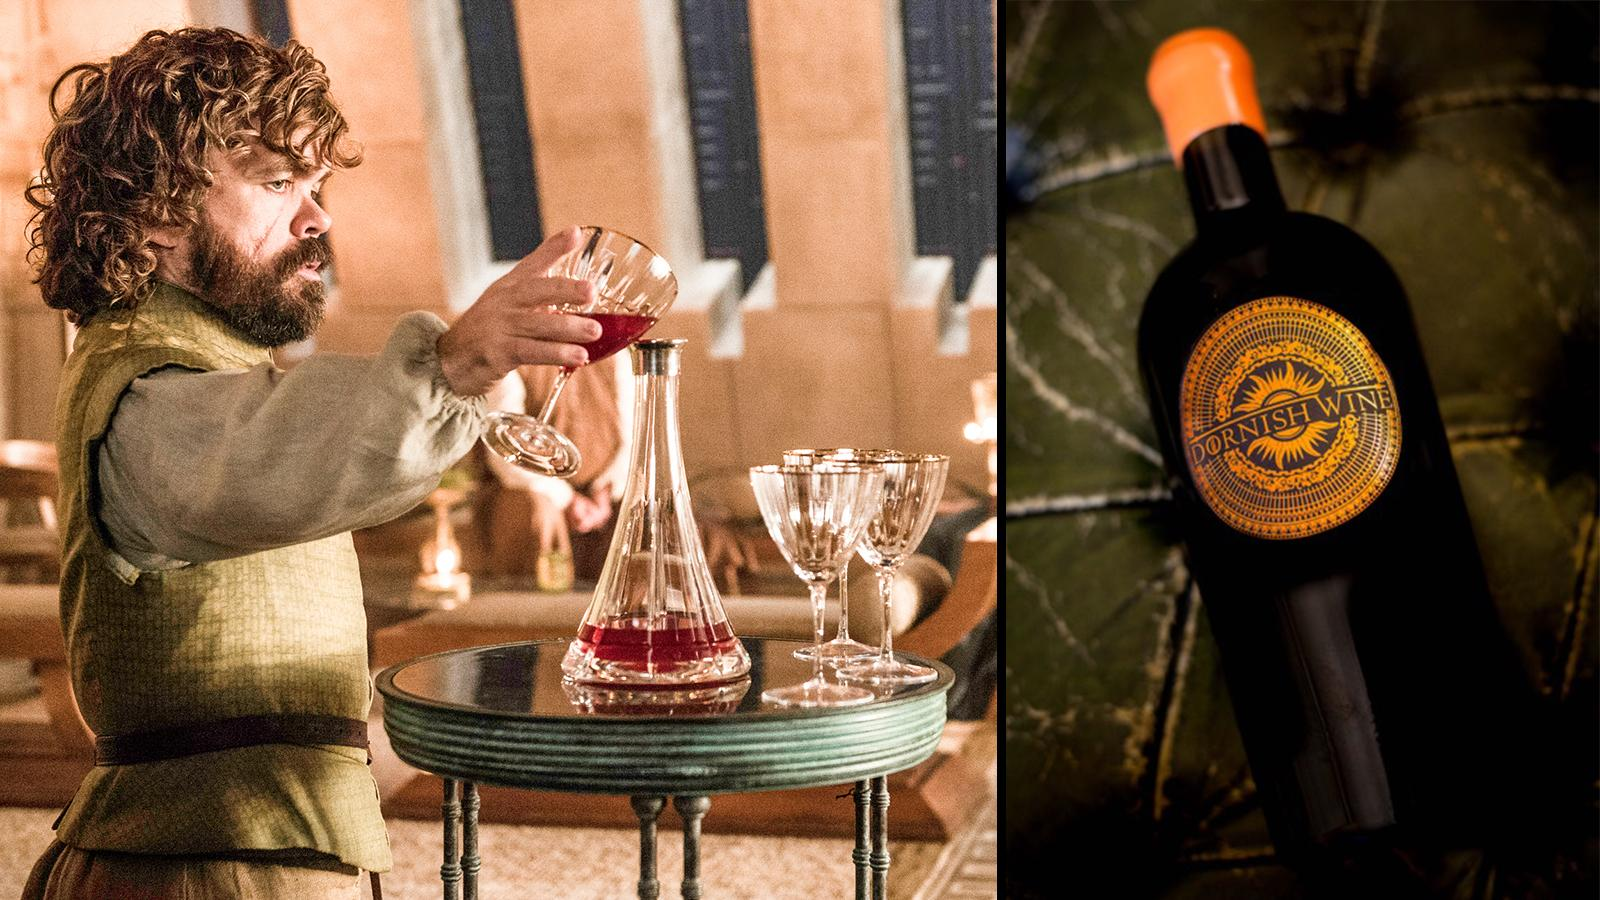 'Game of Thrones' Dornish Wine Made in Real Life